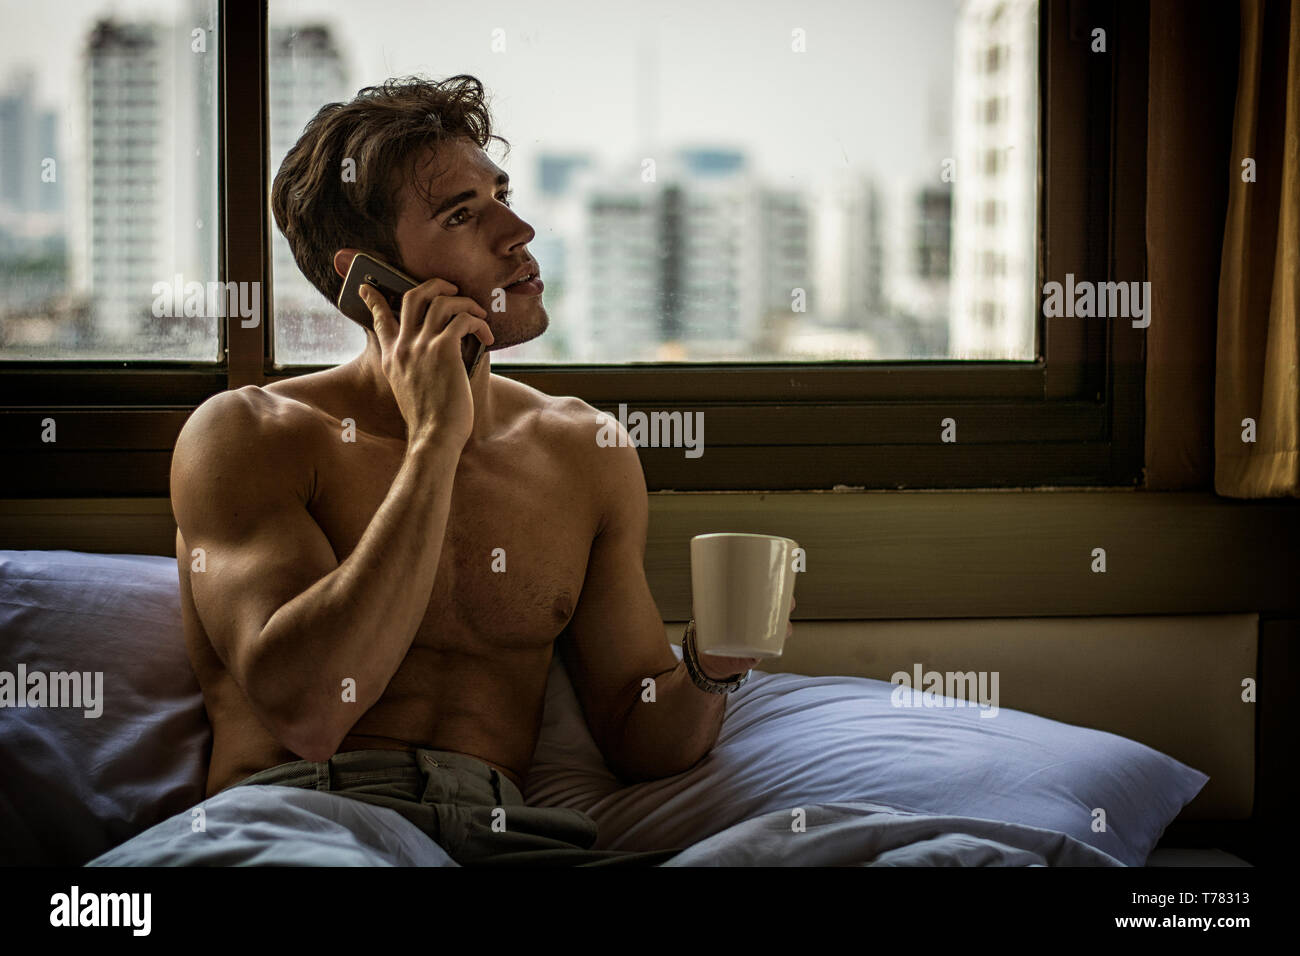 Naked young man with muscular body on bed with mug or cup in hand with coffee or tea talking on cell phone Stock Photo